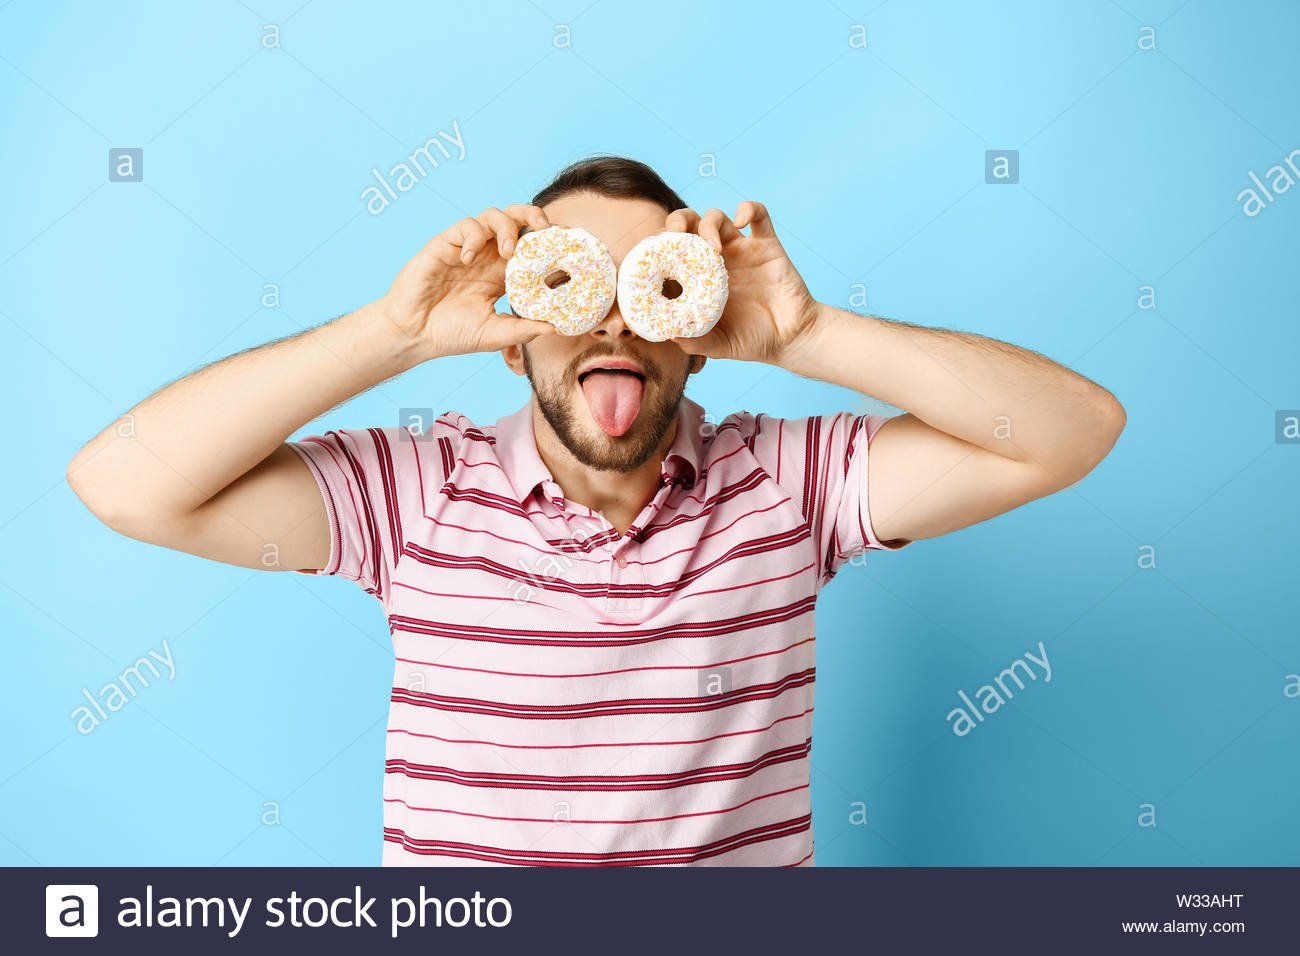 Funny man with donuts on color background Stock Photo 260073684 1300x956